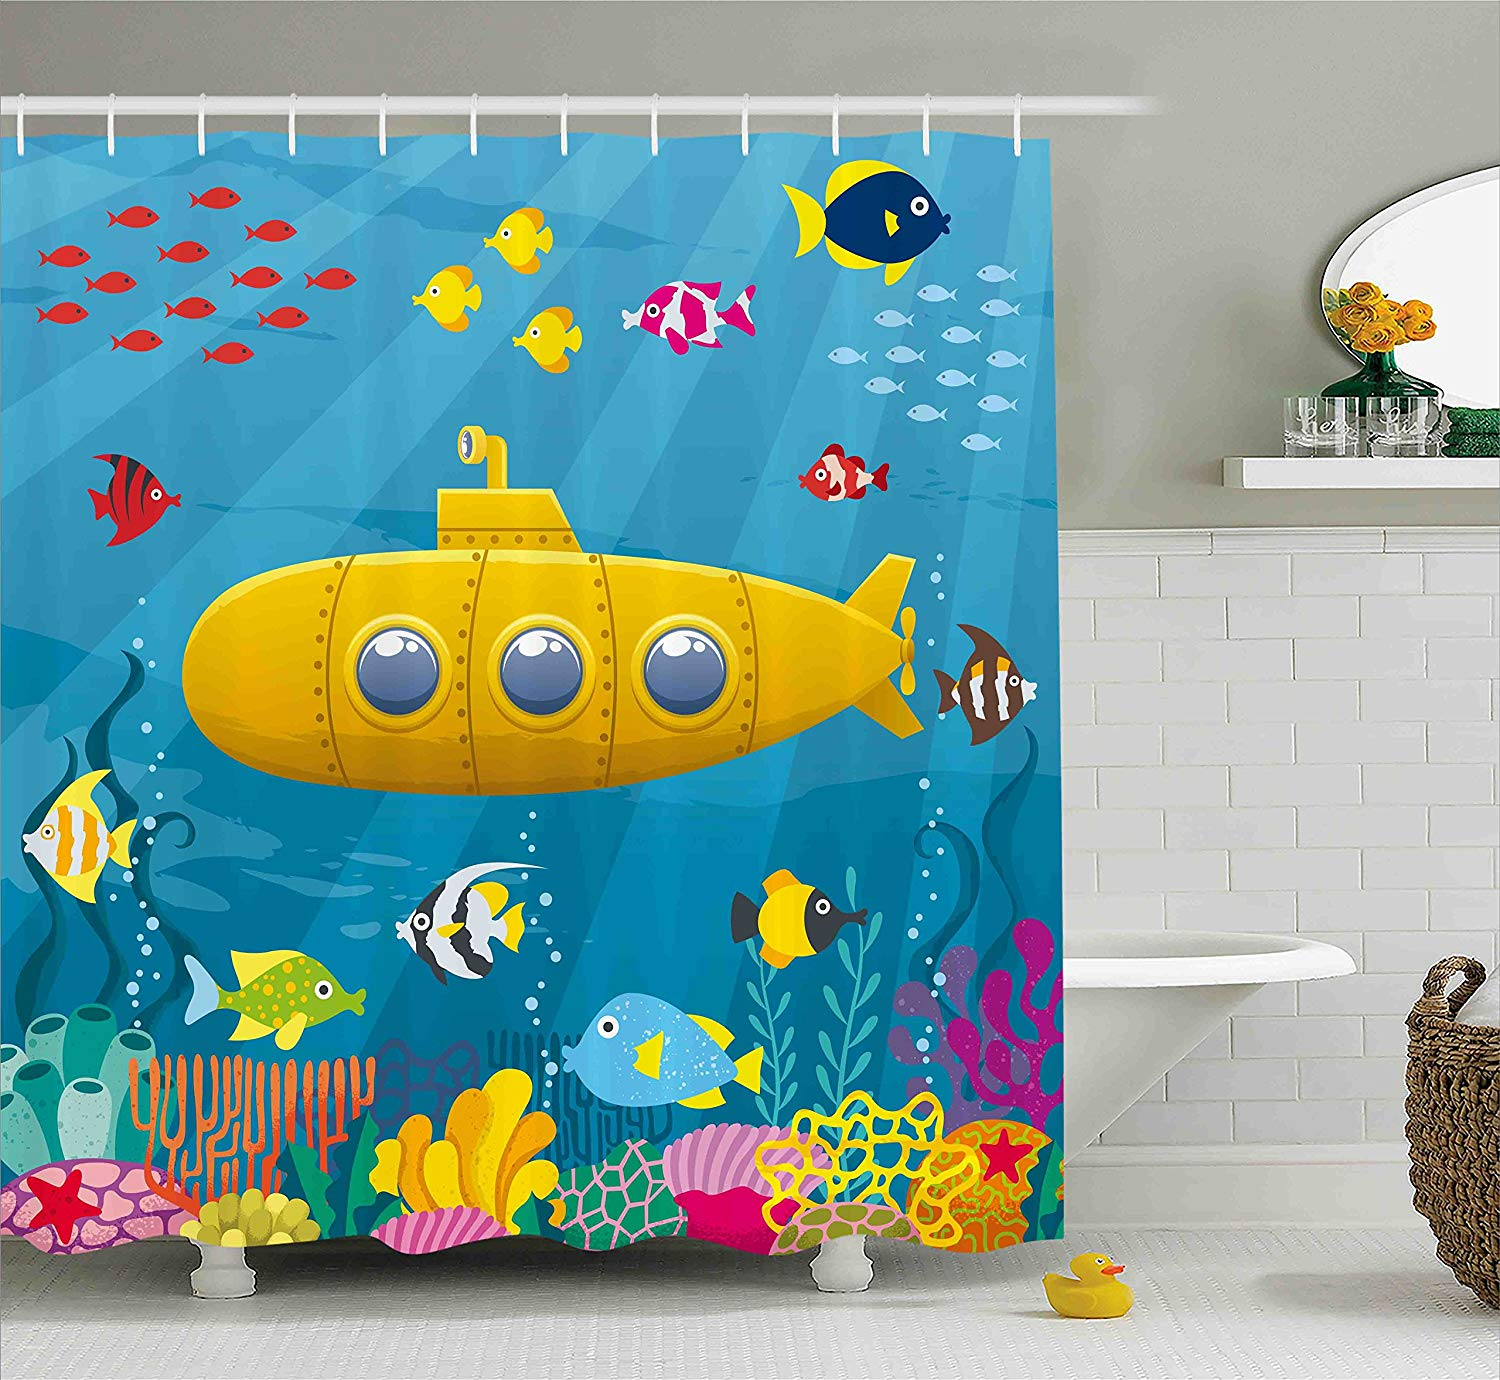 Yellow Submarine Shower Curtain Set, Coral Reef With